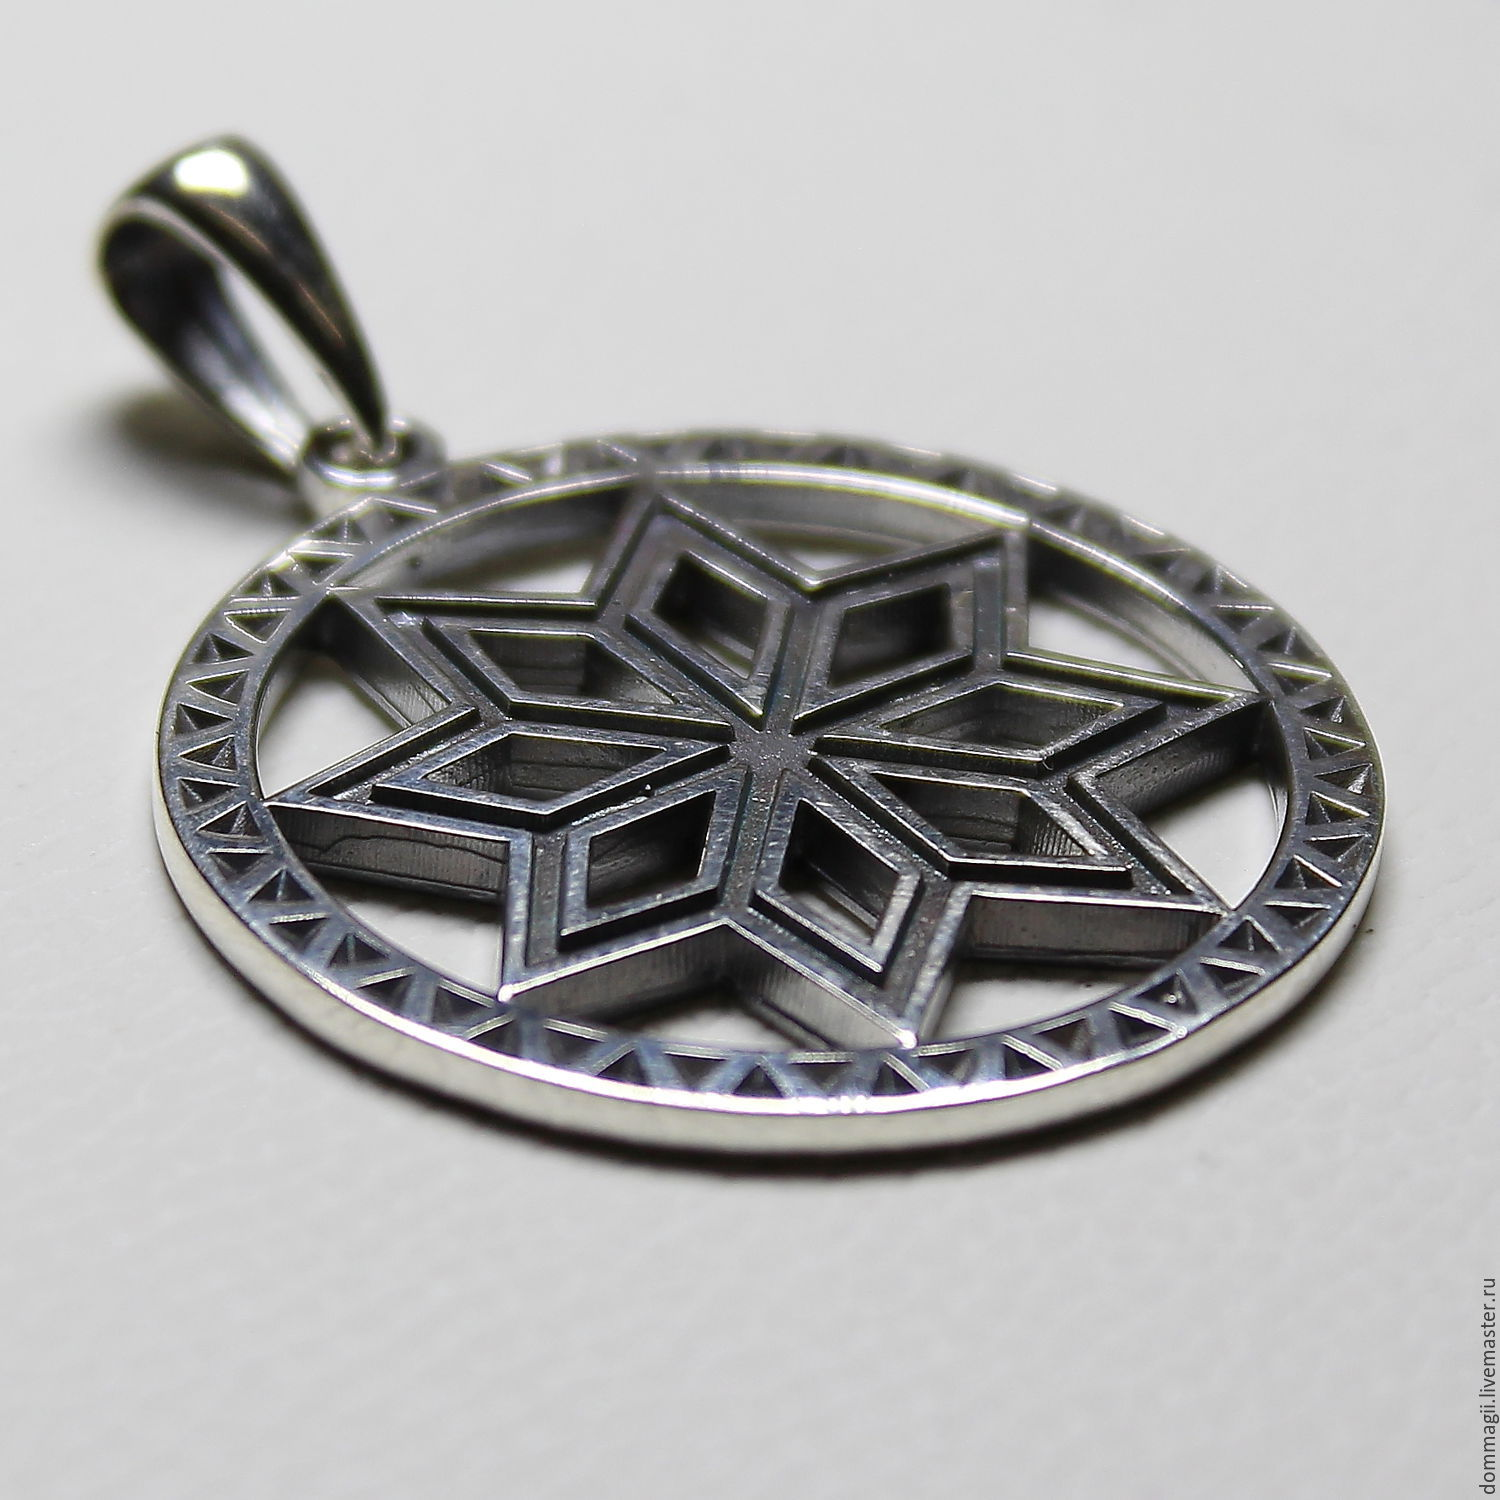 Mythical stone in a circle, Pendants, Moscow,  Фото №1